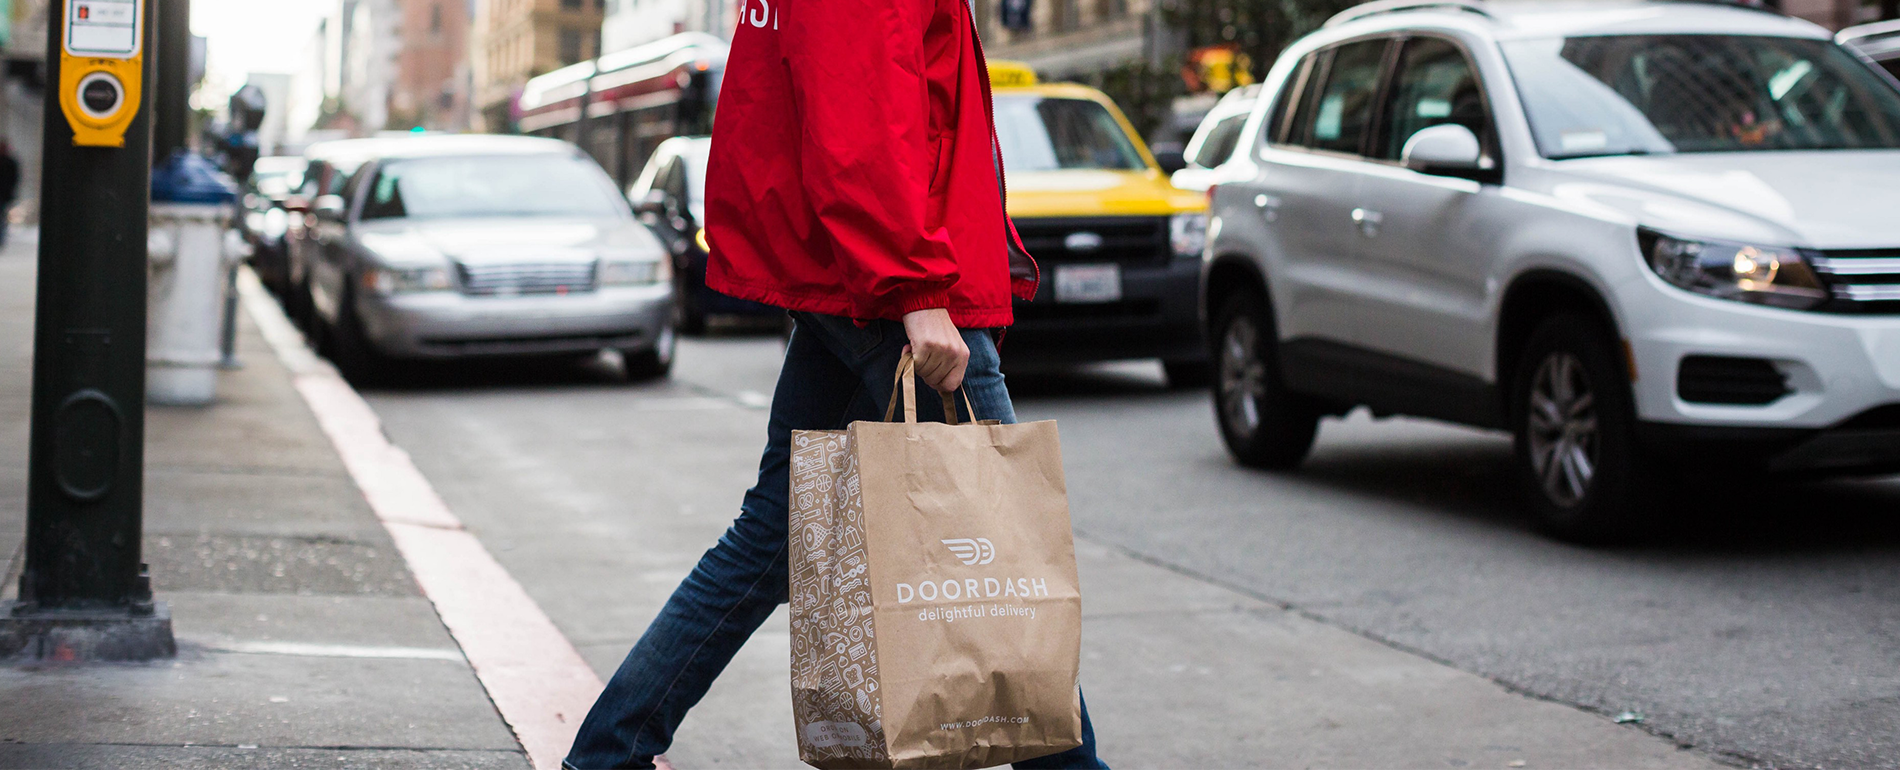 DoorDash: #OpenToDelivery